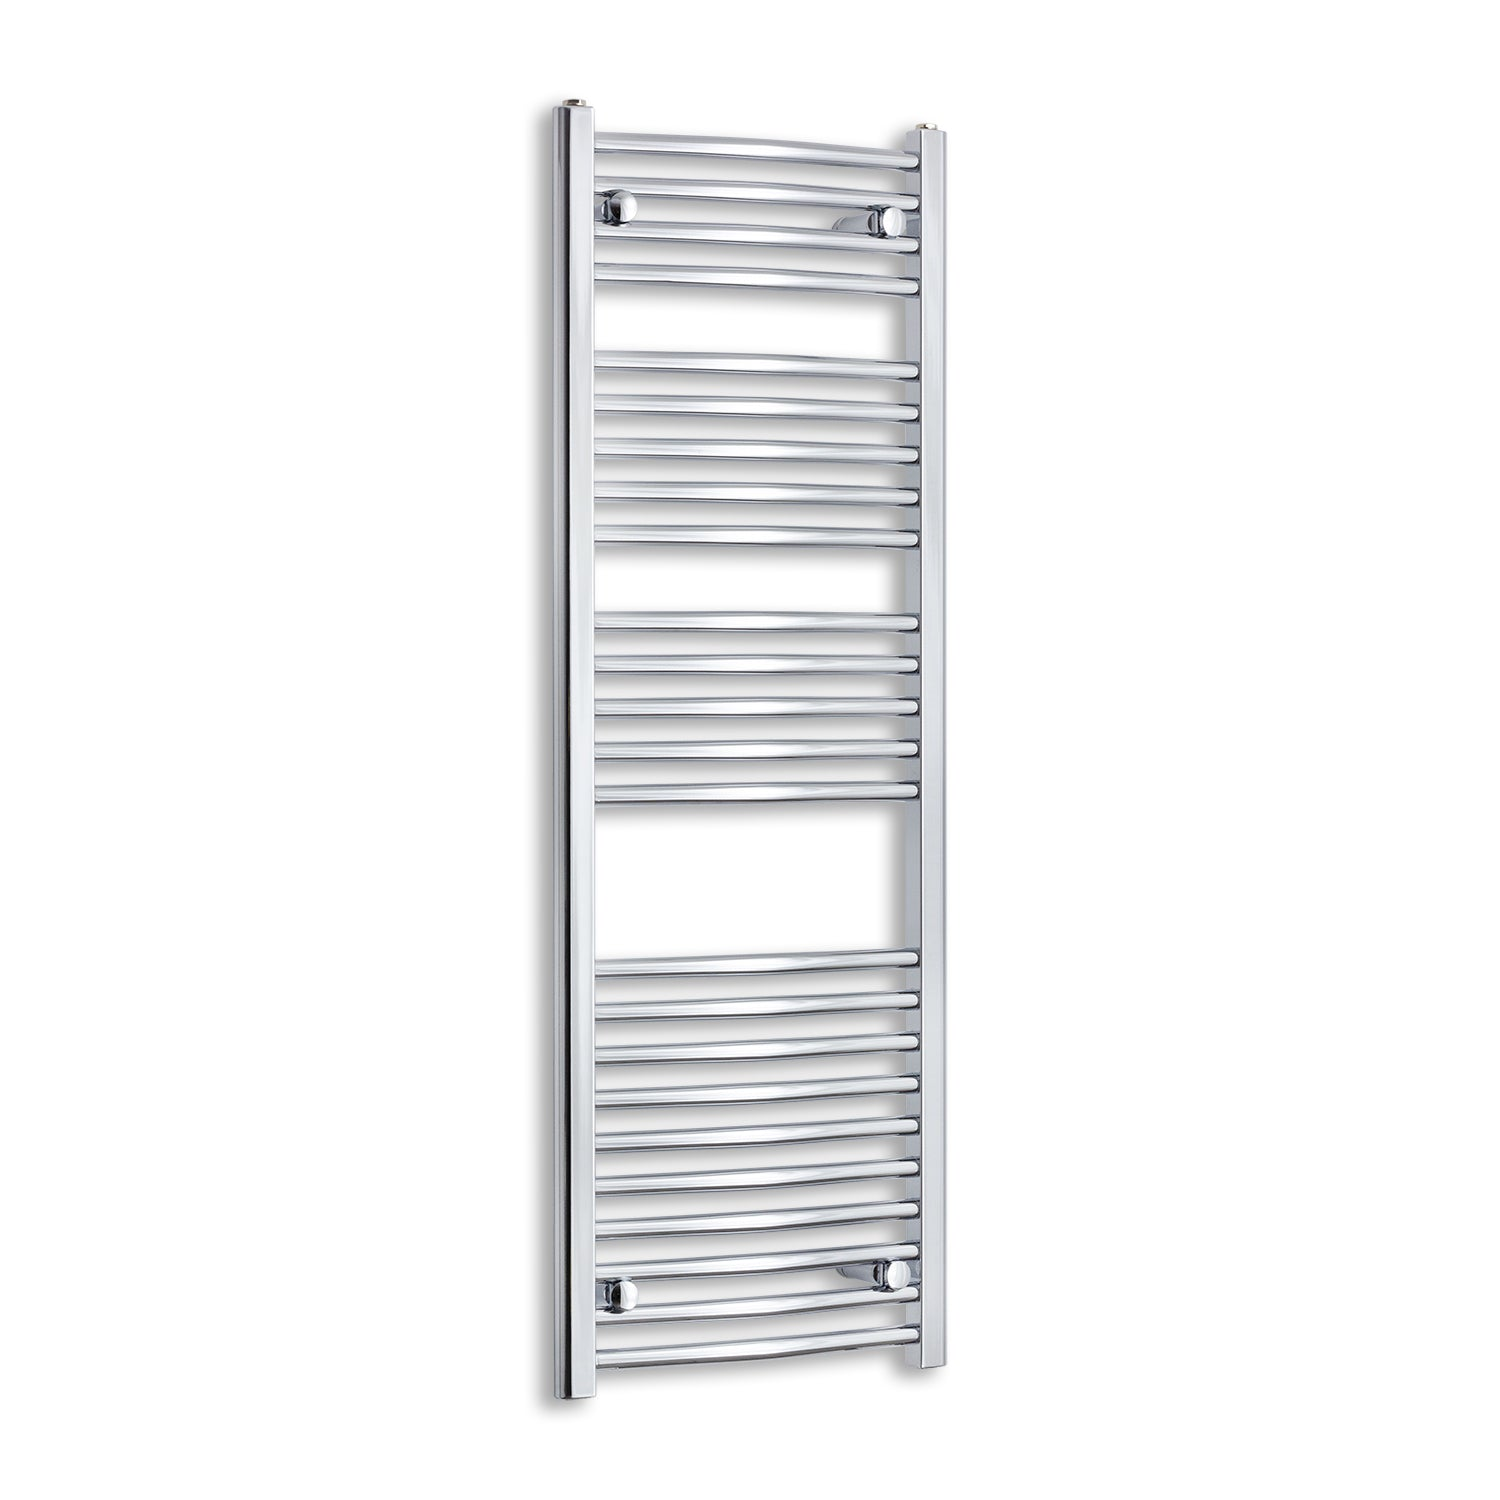 450mm Wide 1300mm High Chrome Towel Rail Radiator